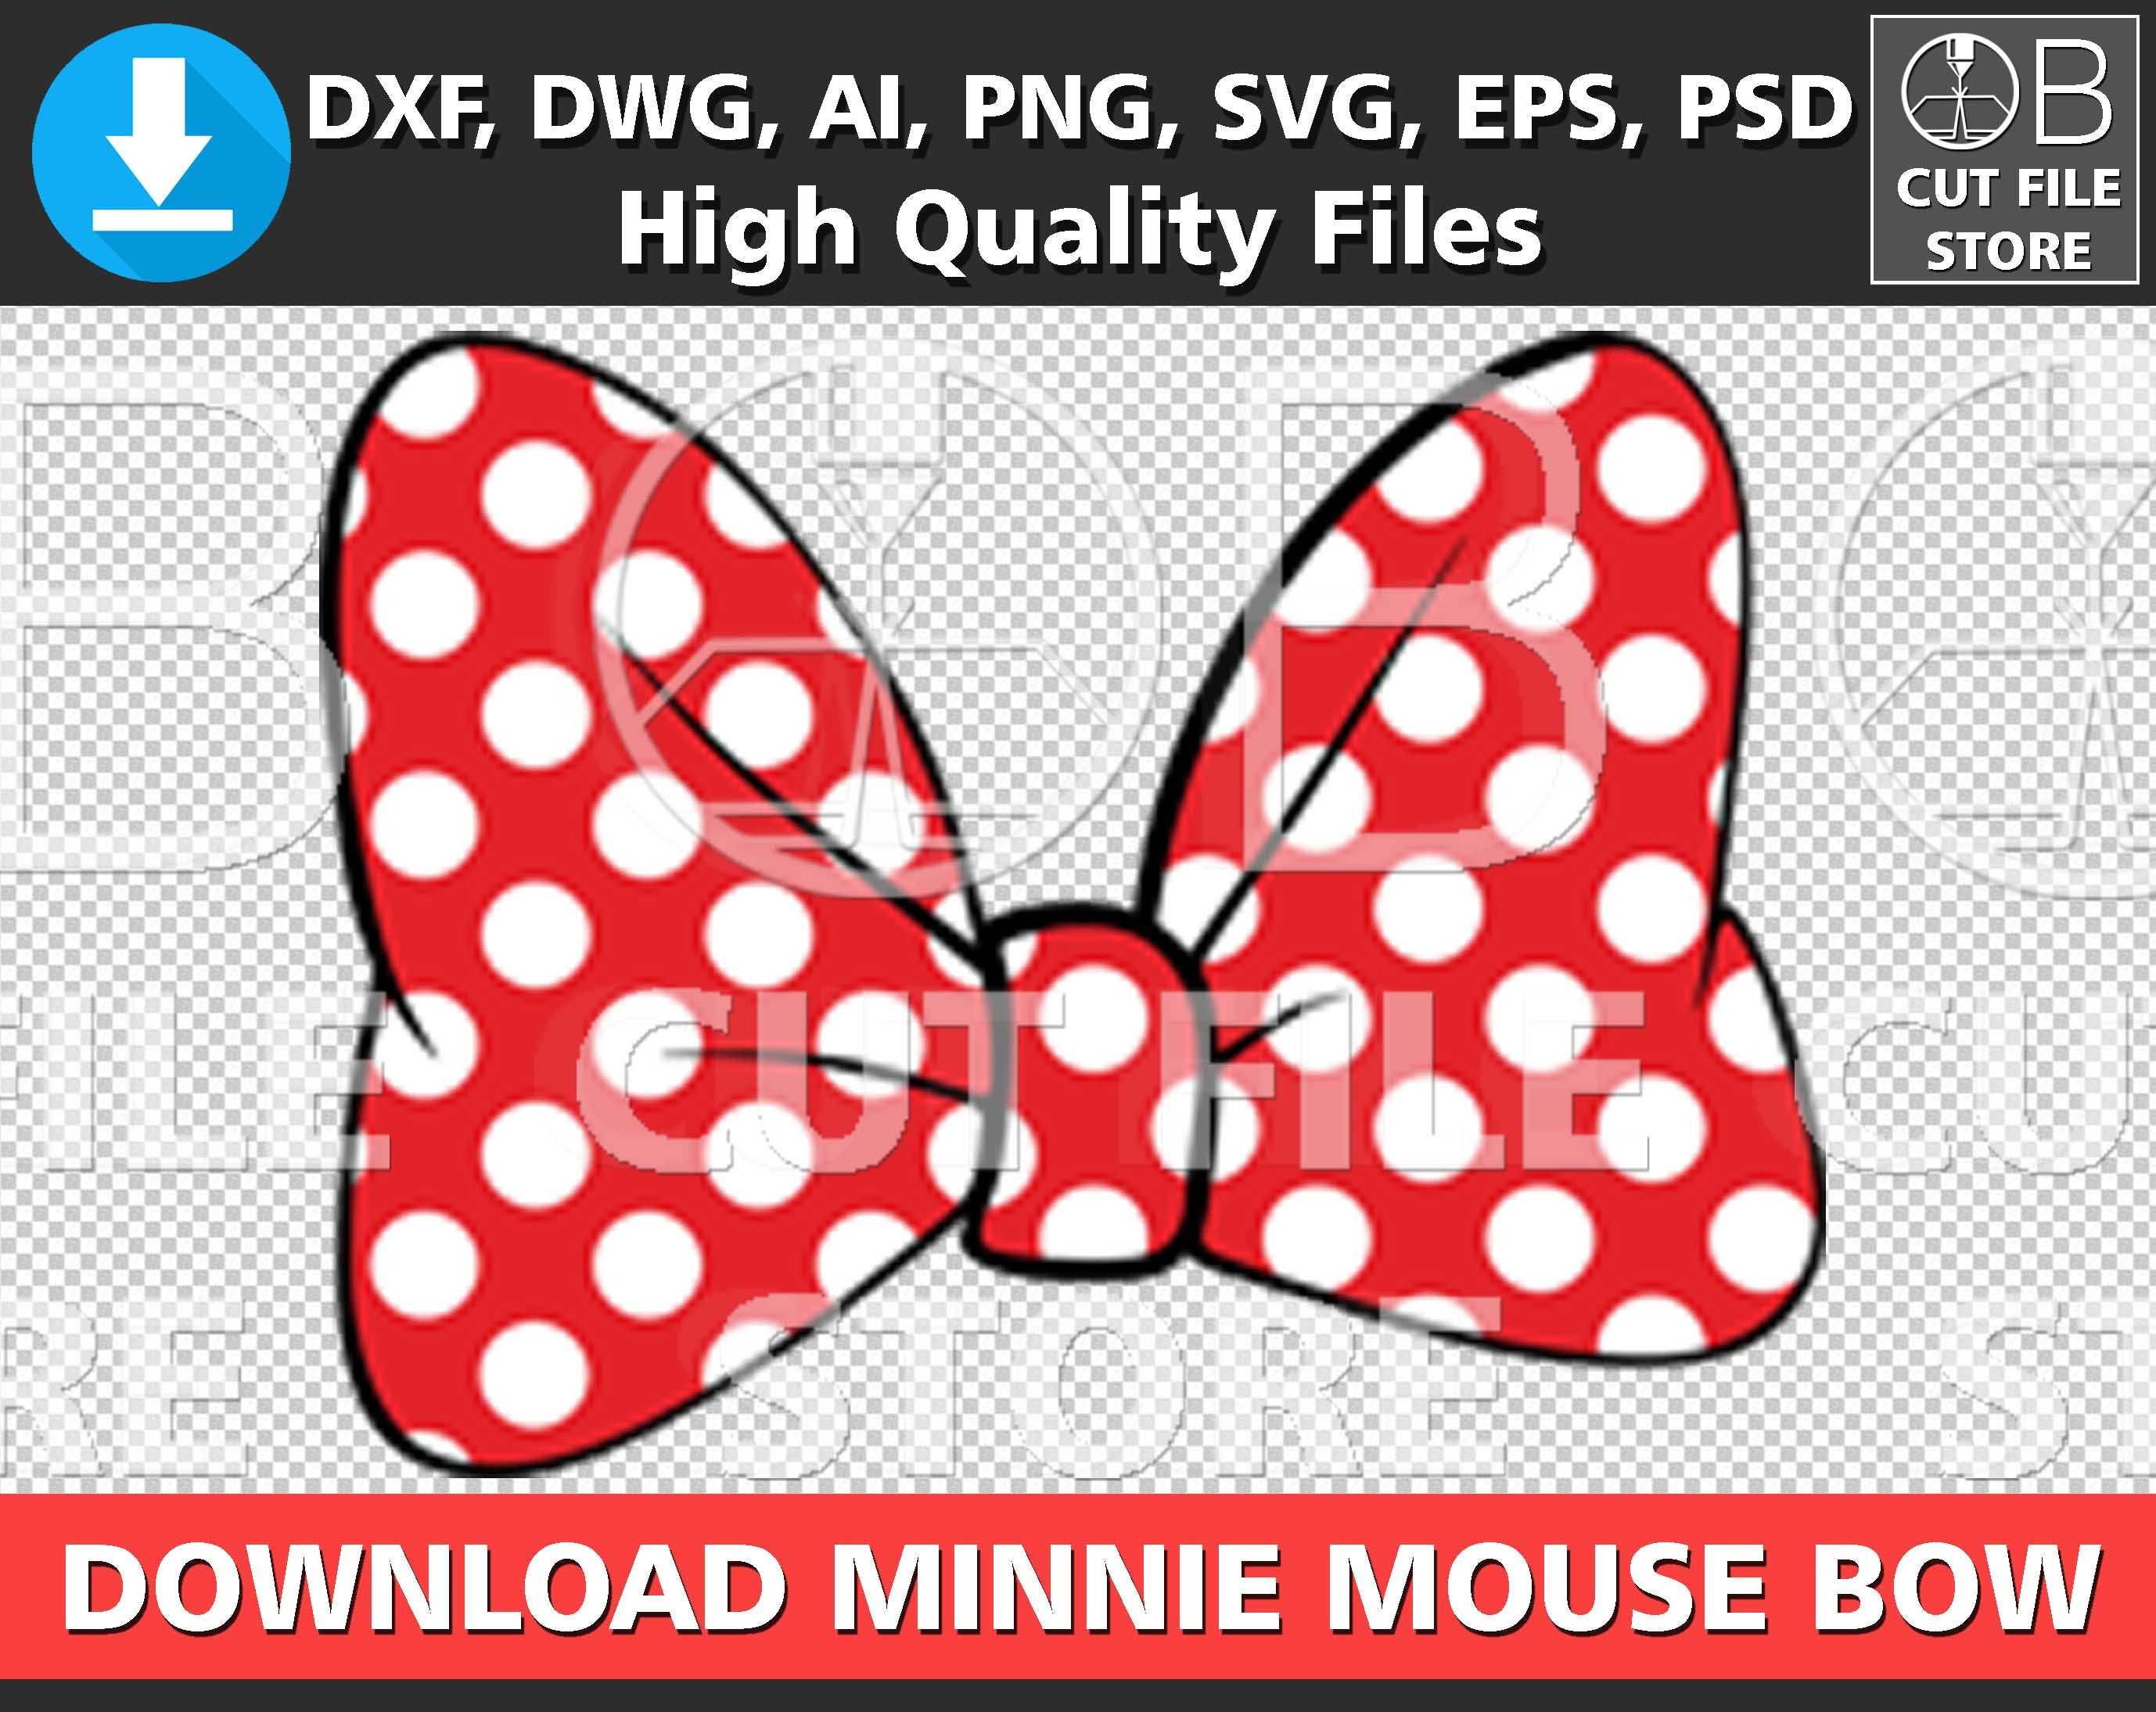 Minnie Mouse Bow Svg Dxf Png Ai Eps File Ribbon Silhouette Etsy